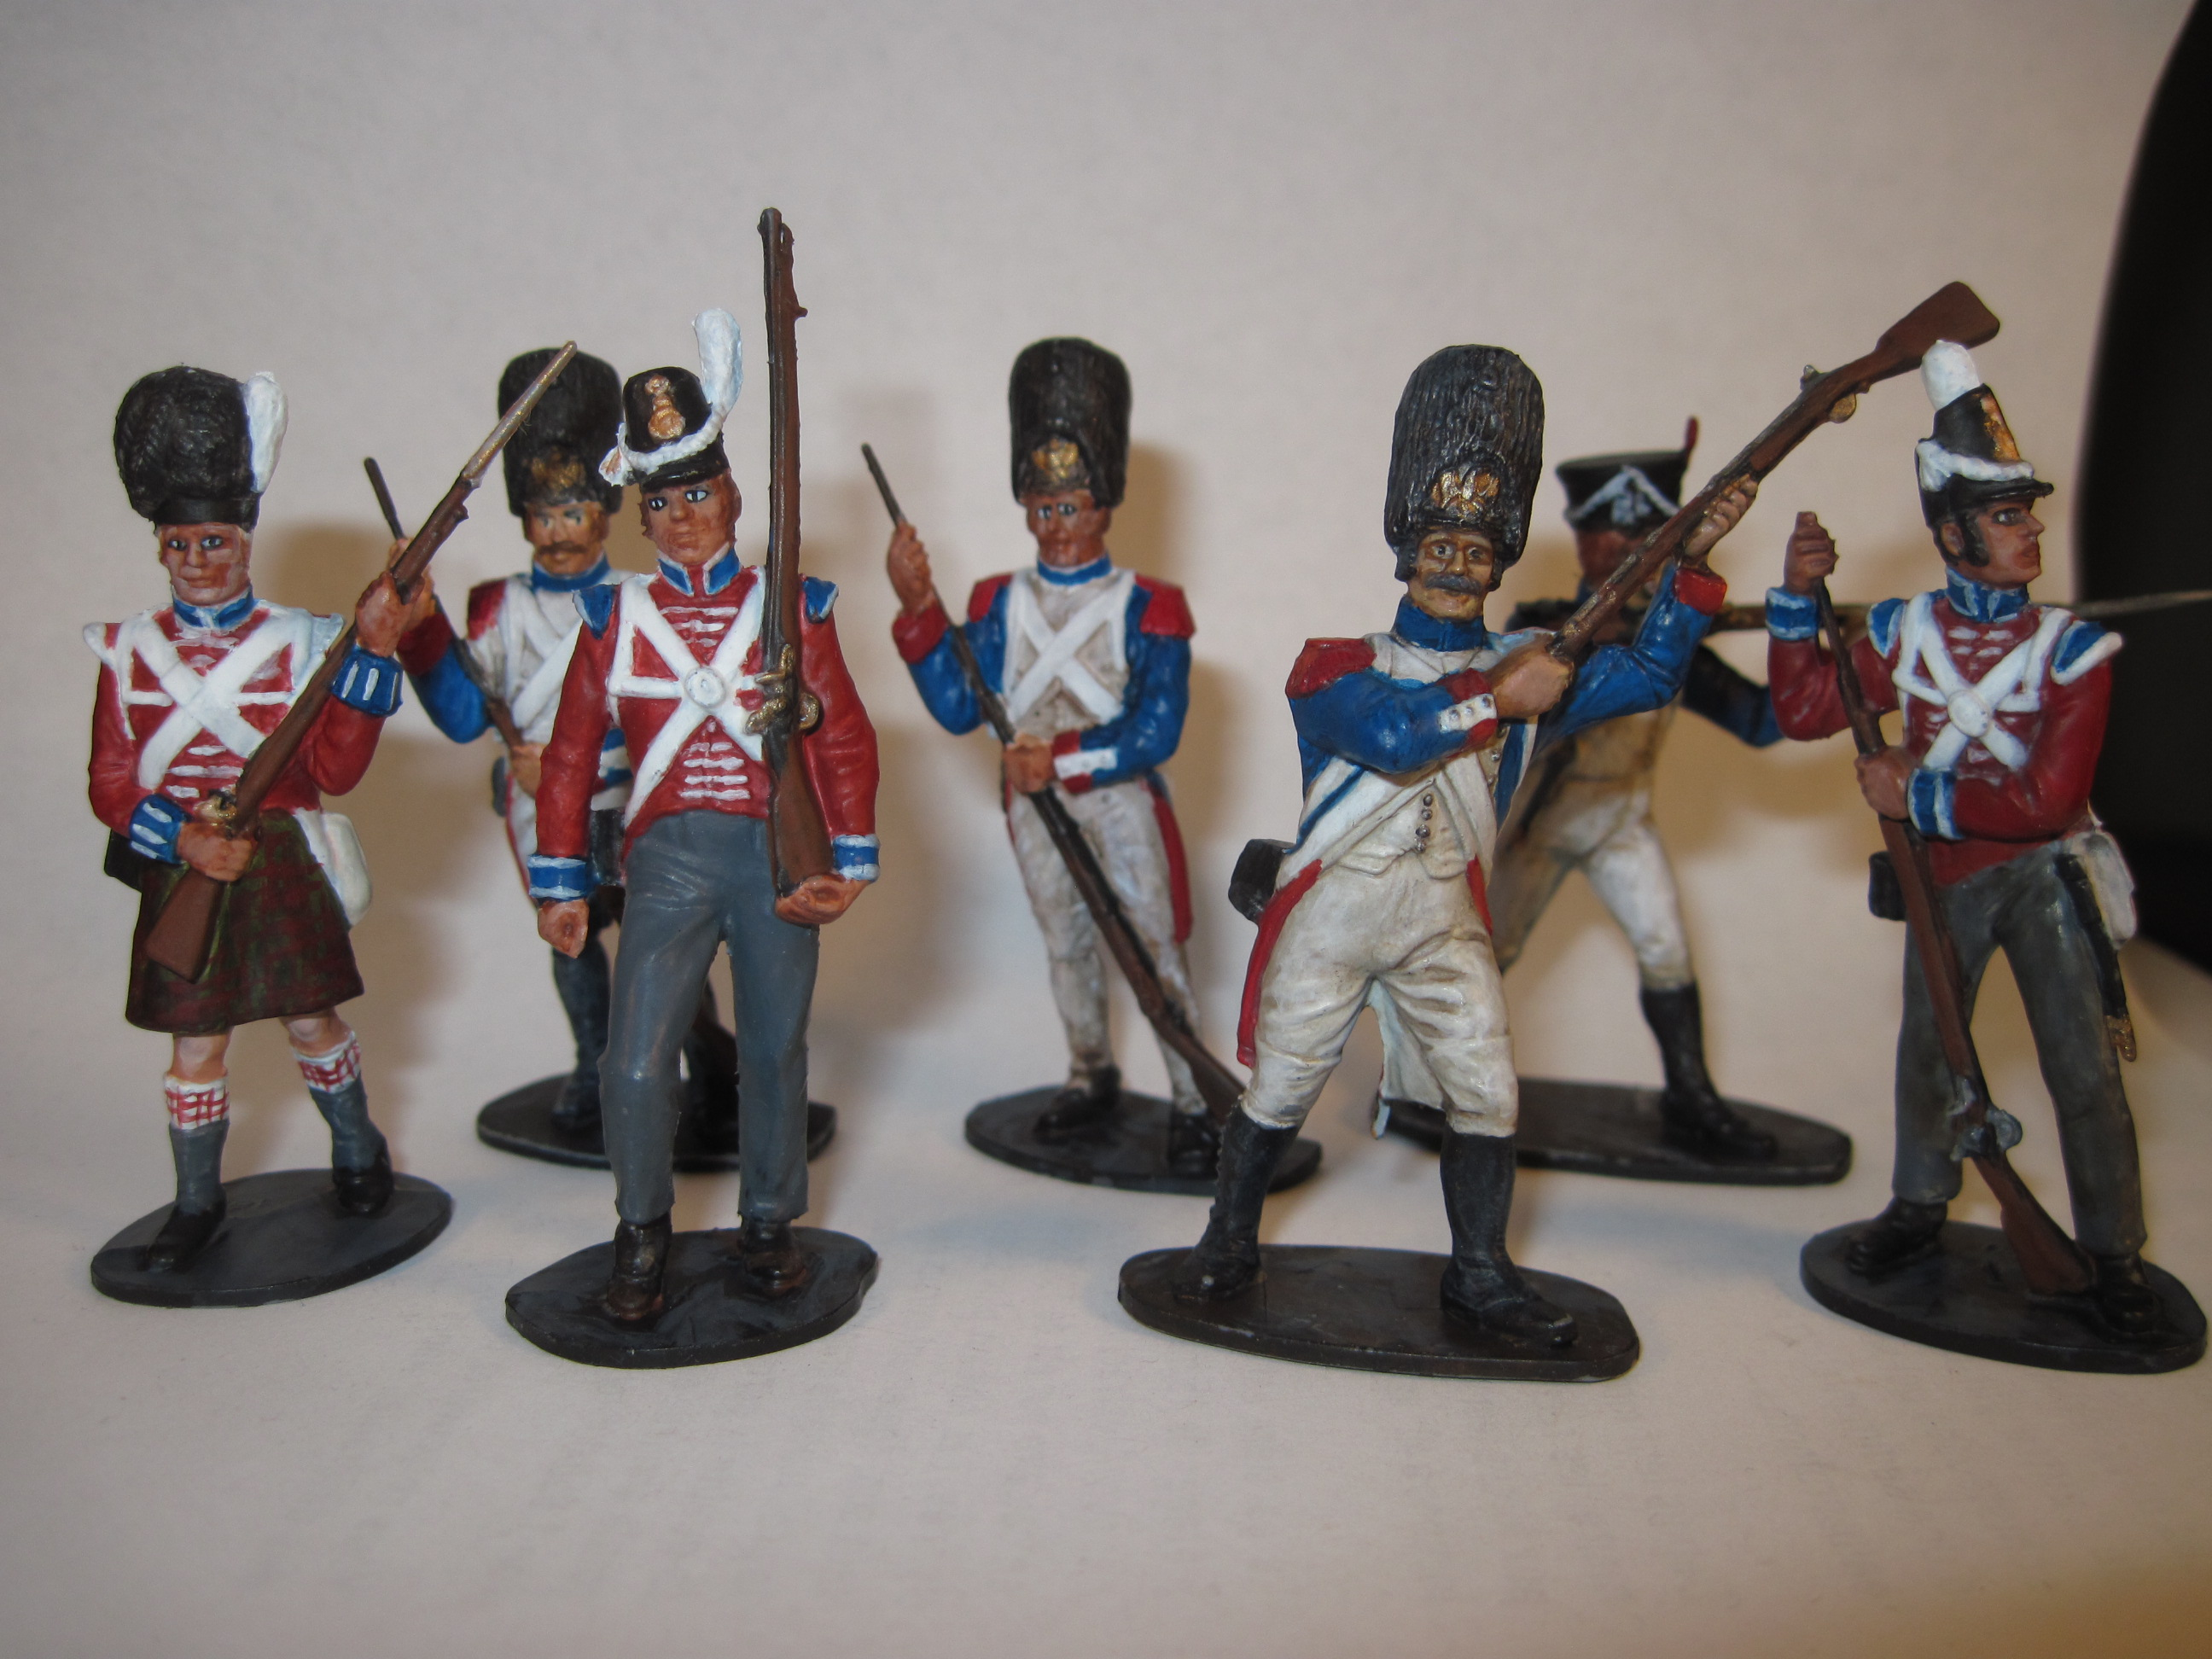 French and British Waterloo soldiers 1815